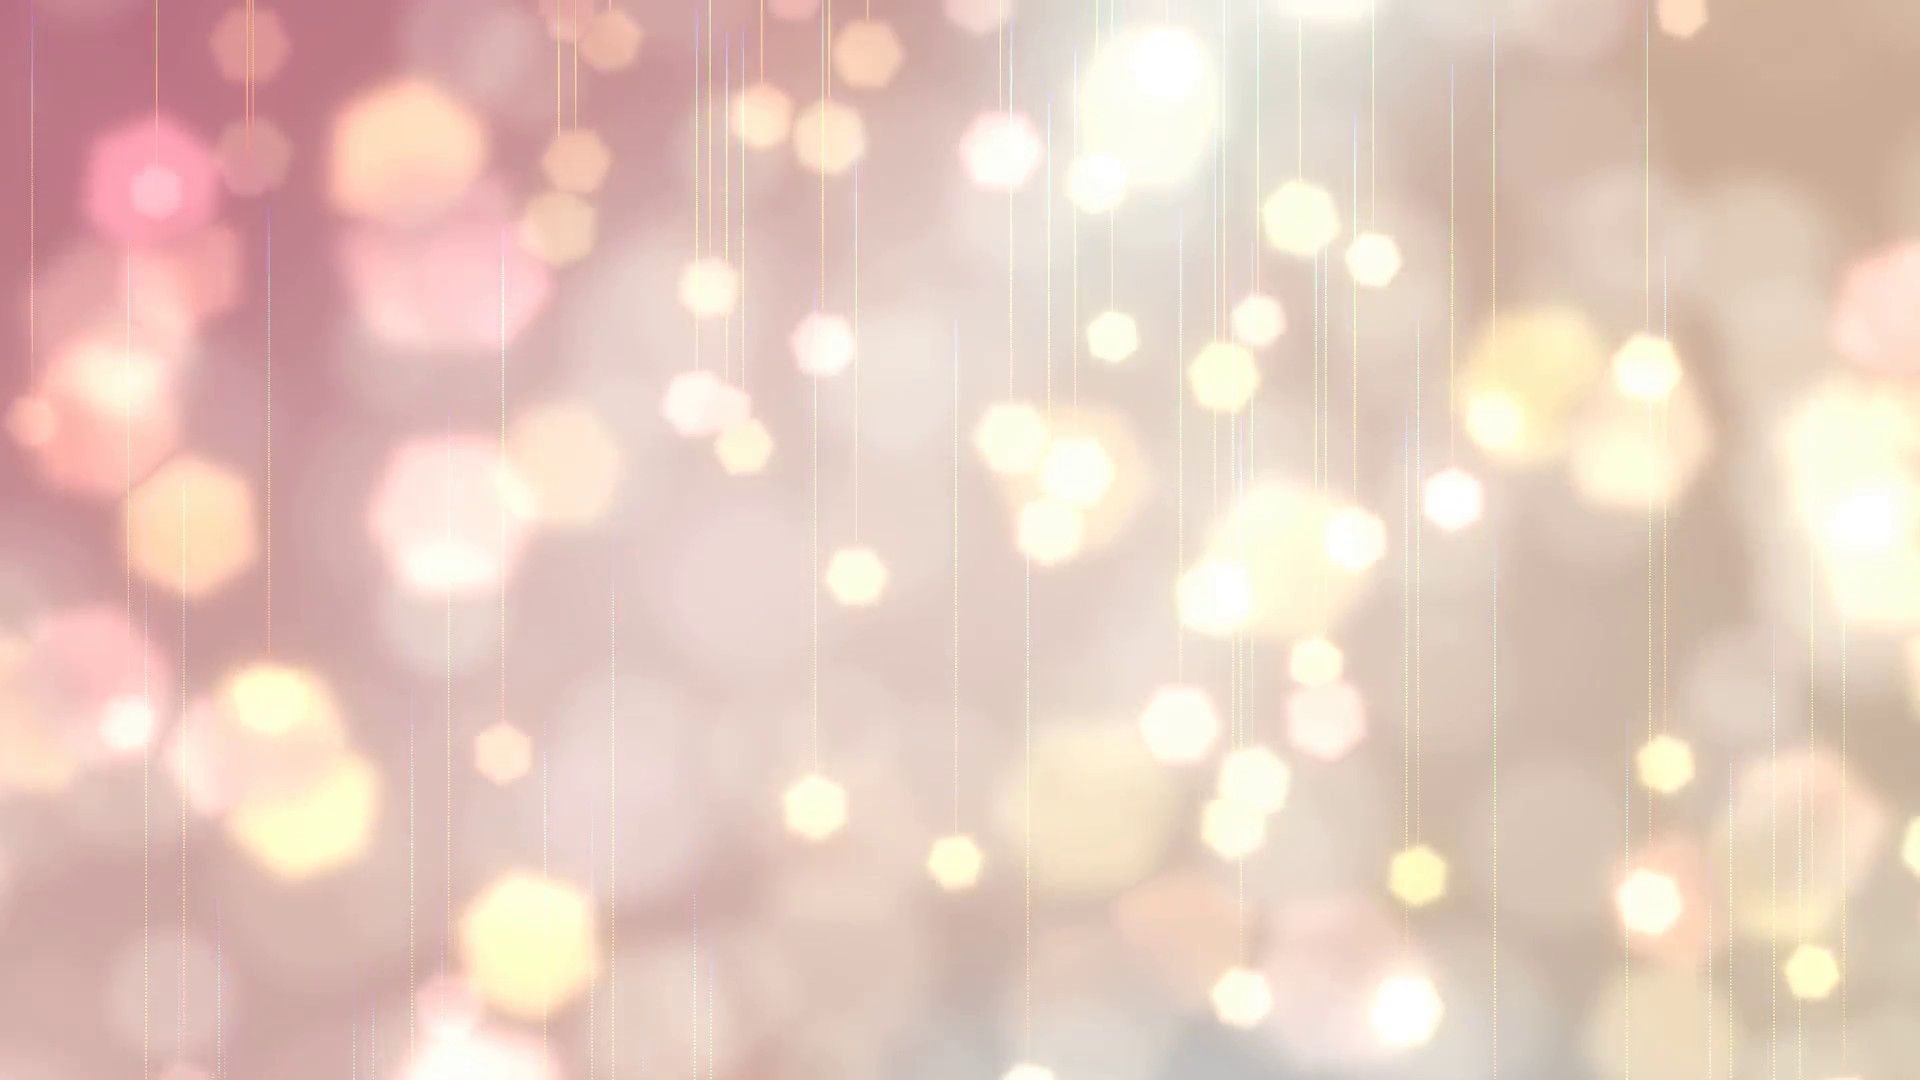 Soft Background Images 48 Pictures